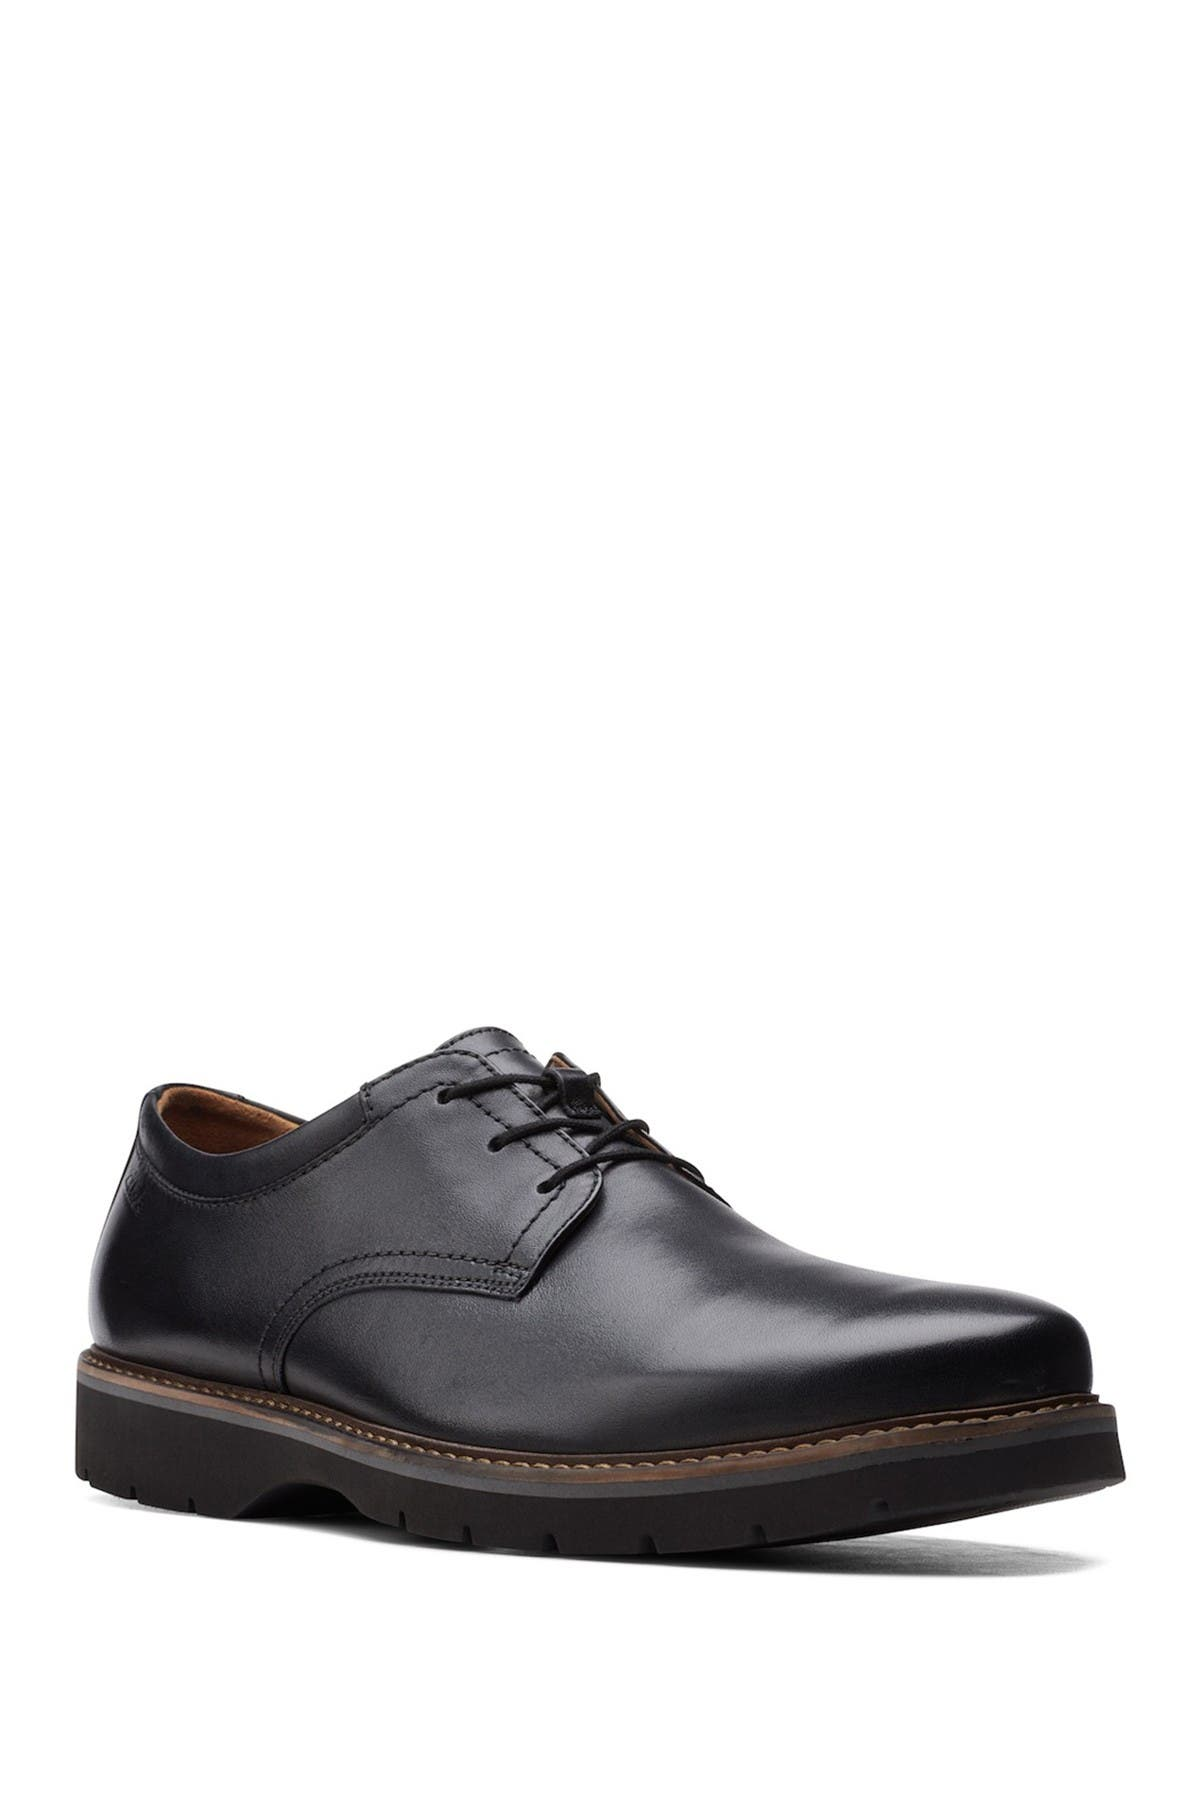 Image of Clarks Bayhill Plaid Toe Oxford - Wide Width Available